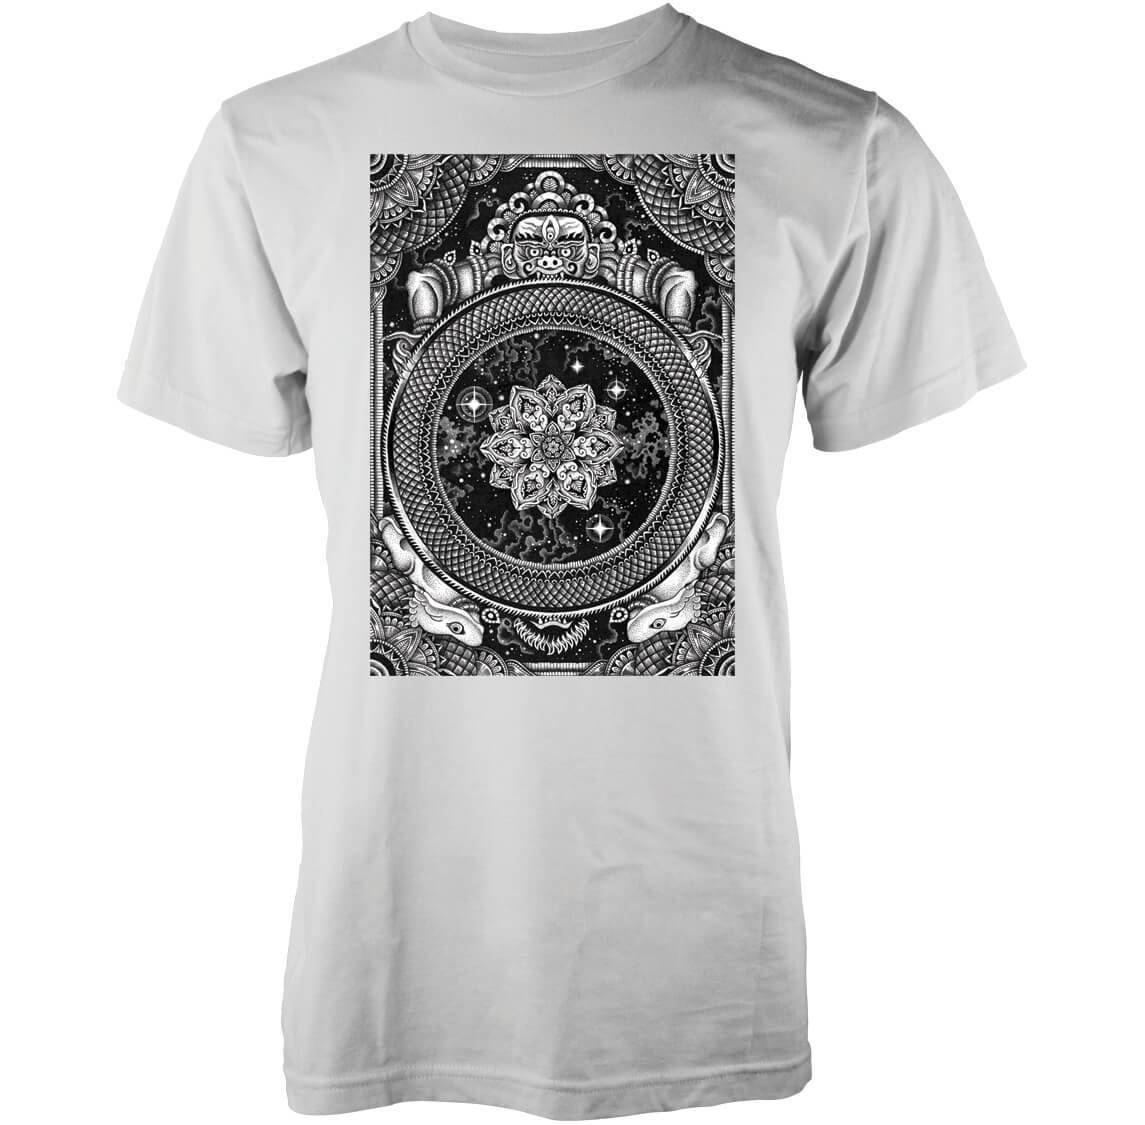 Abandon Ship Men's Jen X Mandala T-Shirt - Black - S - Black